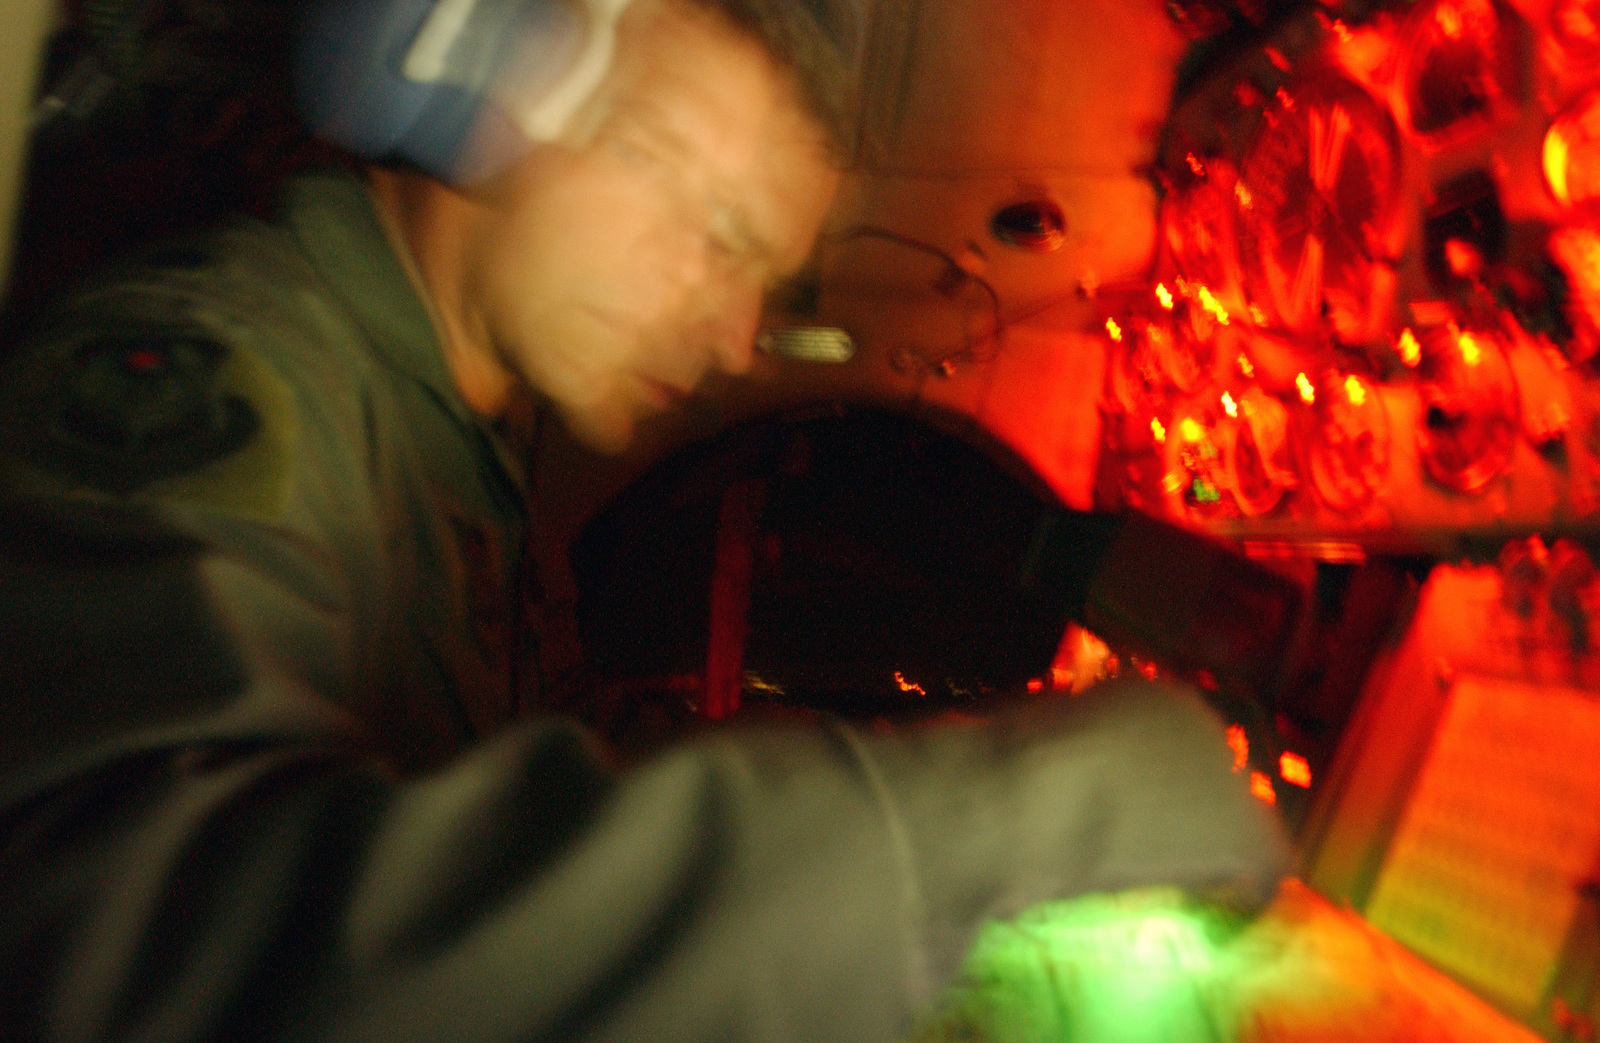 A time exposure blurs a US Air Force (USAF) Navigator as he makes navigational calculations at his station onboard an Antonov AN-32 Cline aircraft during a night flight from Hurlburt Field, Florida (FL) flightline during nighttime operations. The Cline is a Russian built aircraft used by the 6th Special Operations Squadron (SOS)